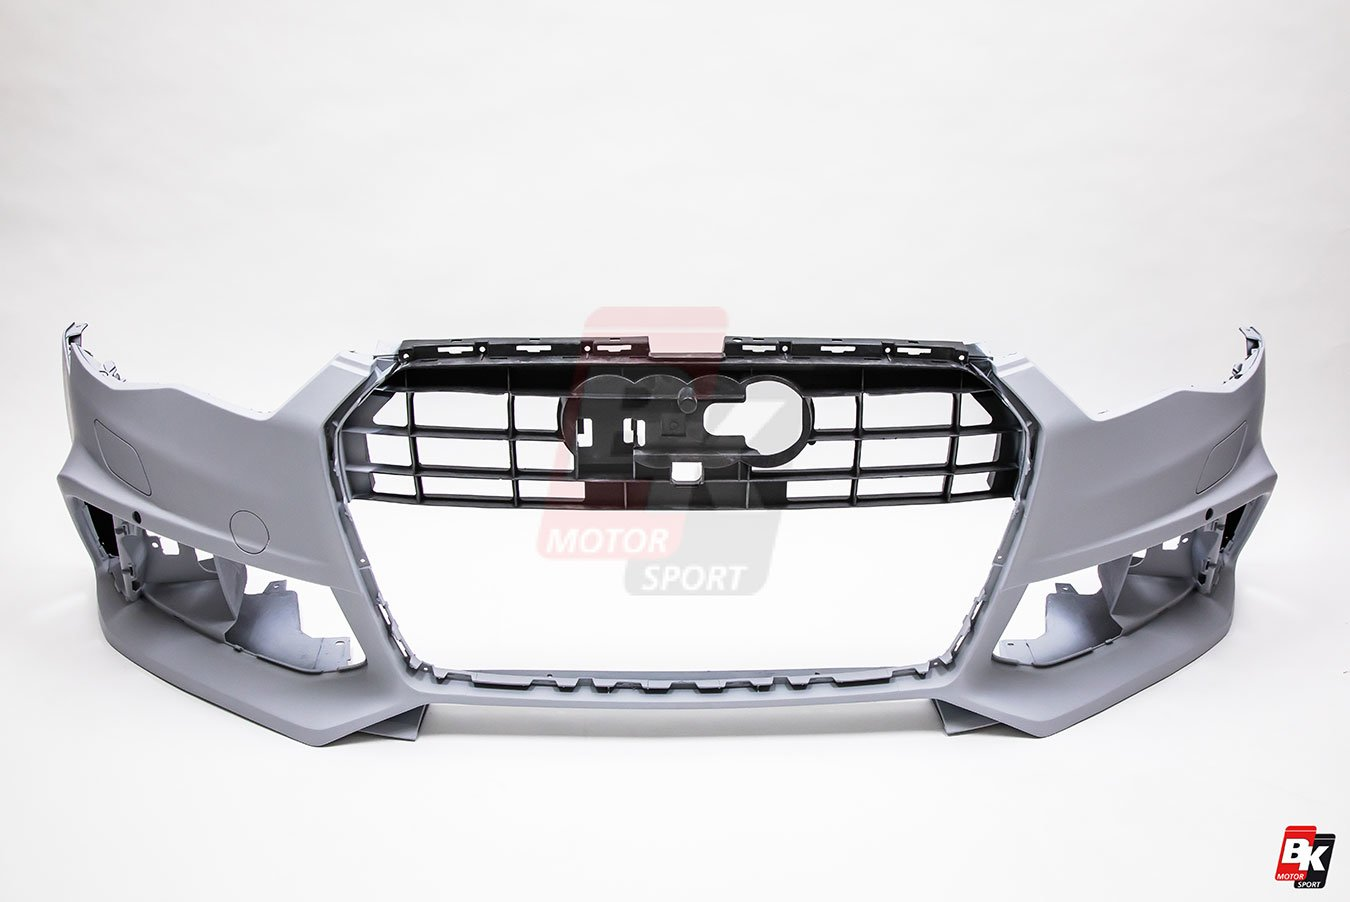 BKM Front Bumper Kit with Front Grille (RS Style - Carbon), fits Audi A6/S6 C7.5